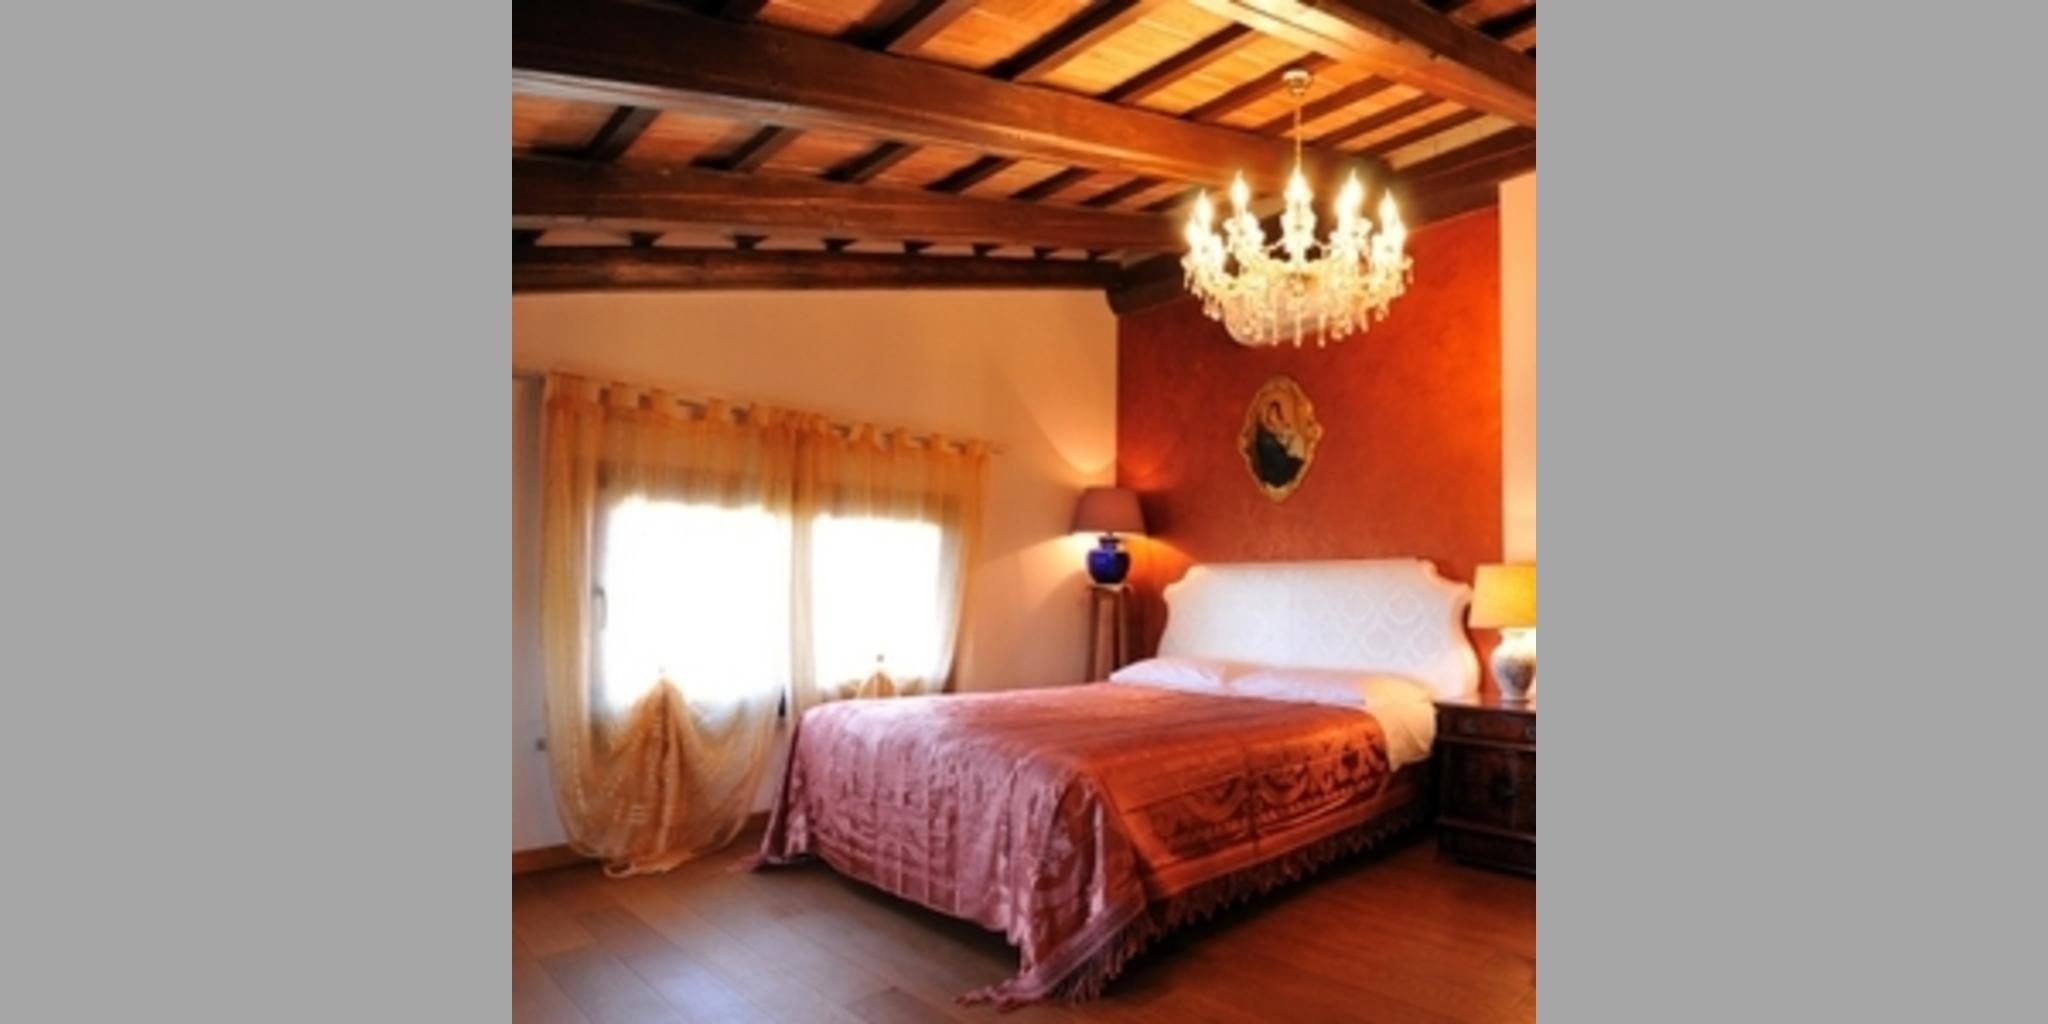 Bed & Breakfast San Giovanni In Marignano - San Giovanni In Marignano